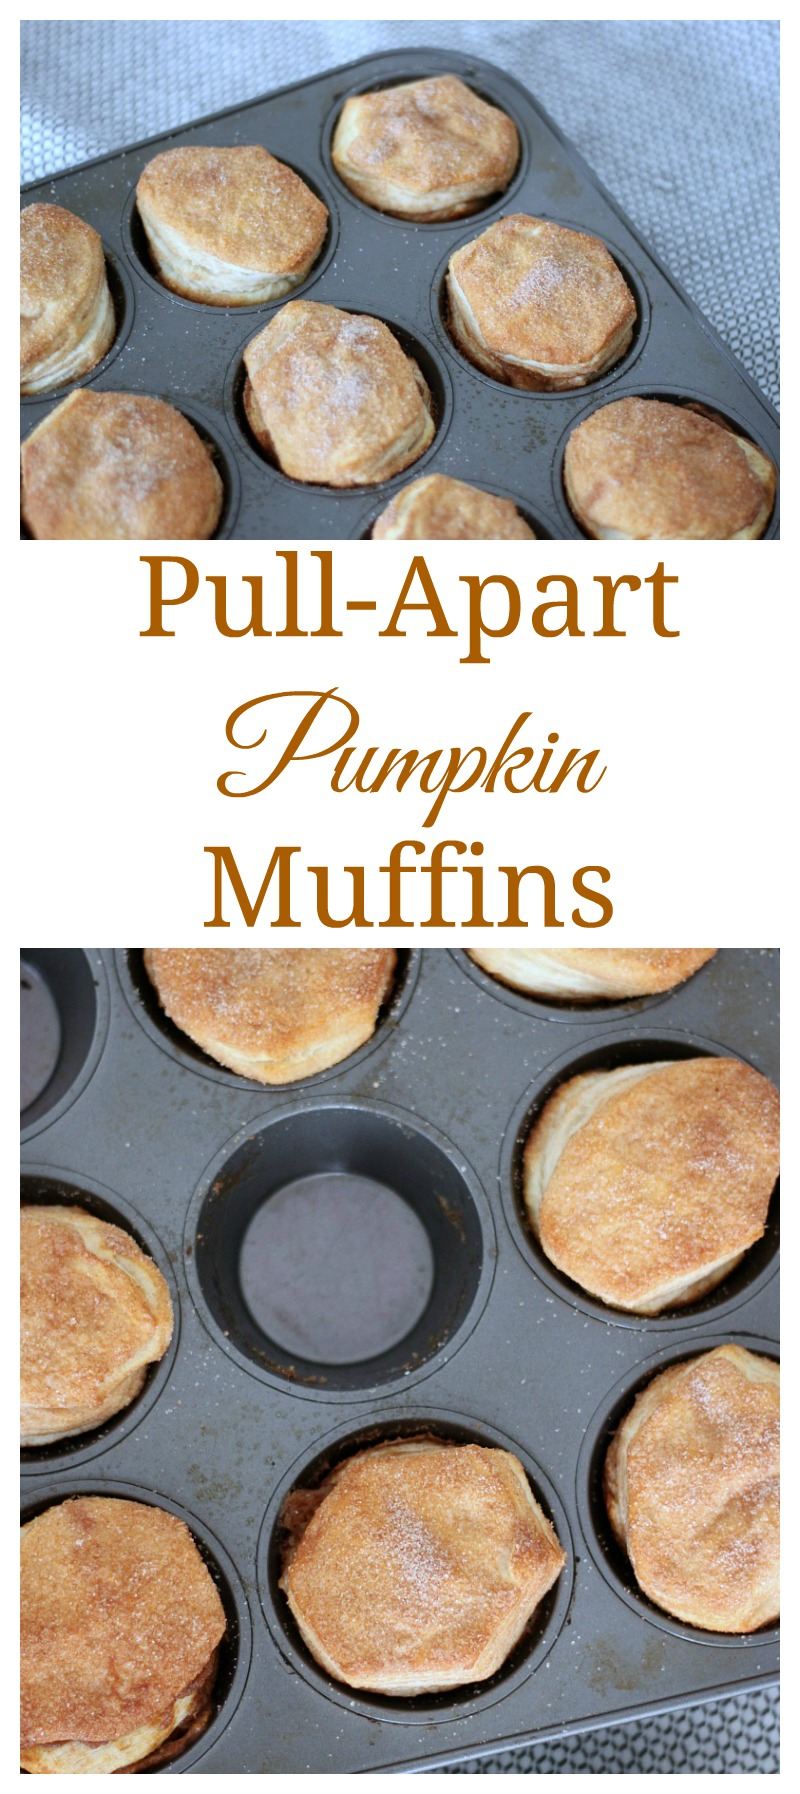 These pull-apart pumpkin muffins are an easy to make holiday treat that requires few ingredients but tastes oh so good. #muffins #pumpkin